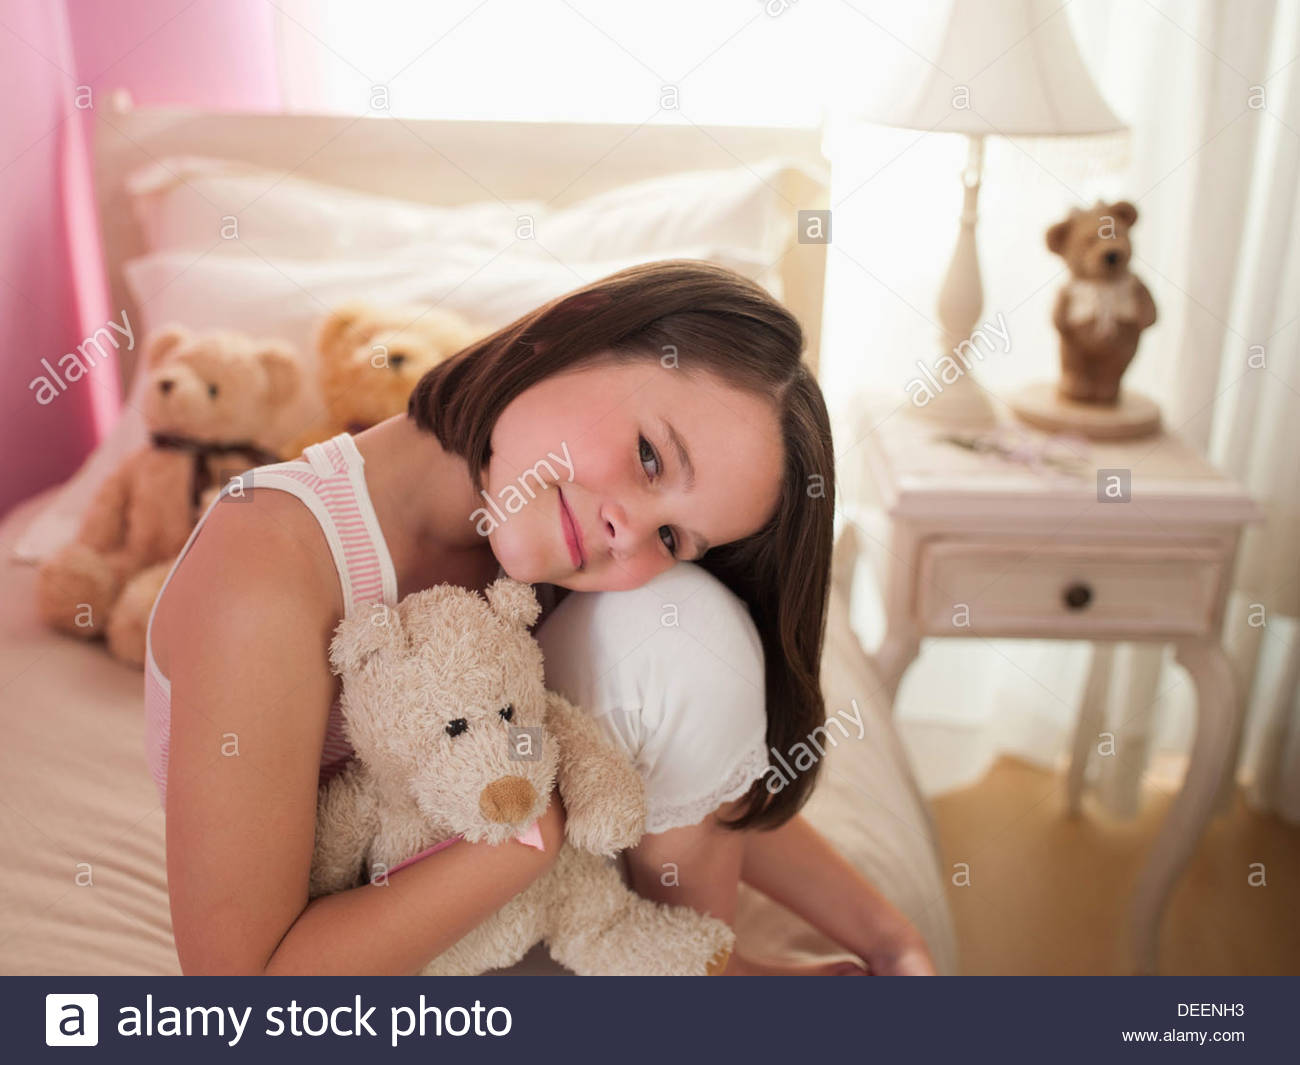 Girl hugging stuffed animal on bed - Stock Image